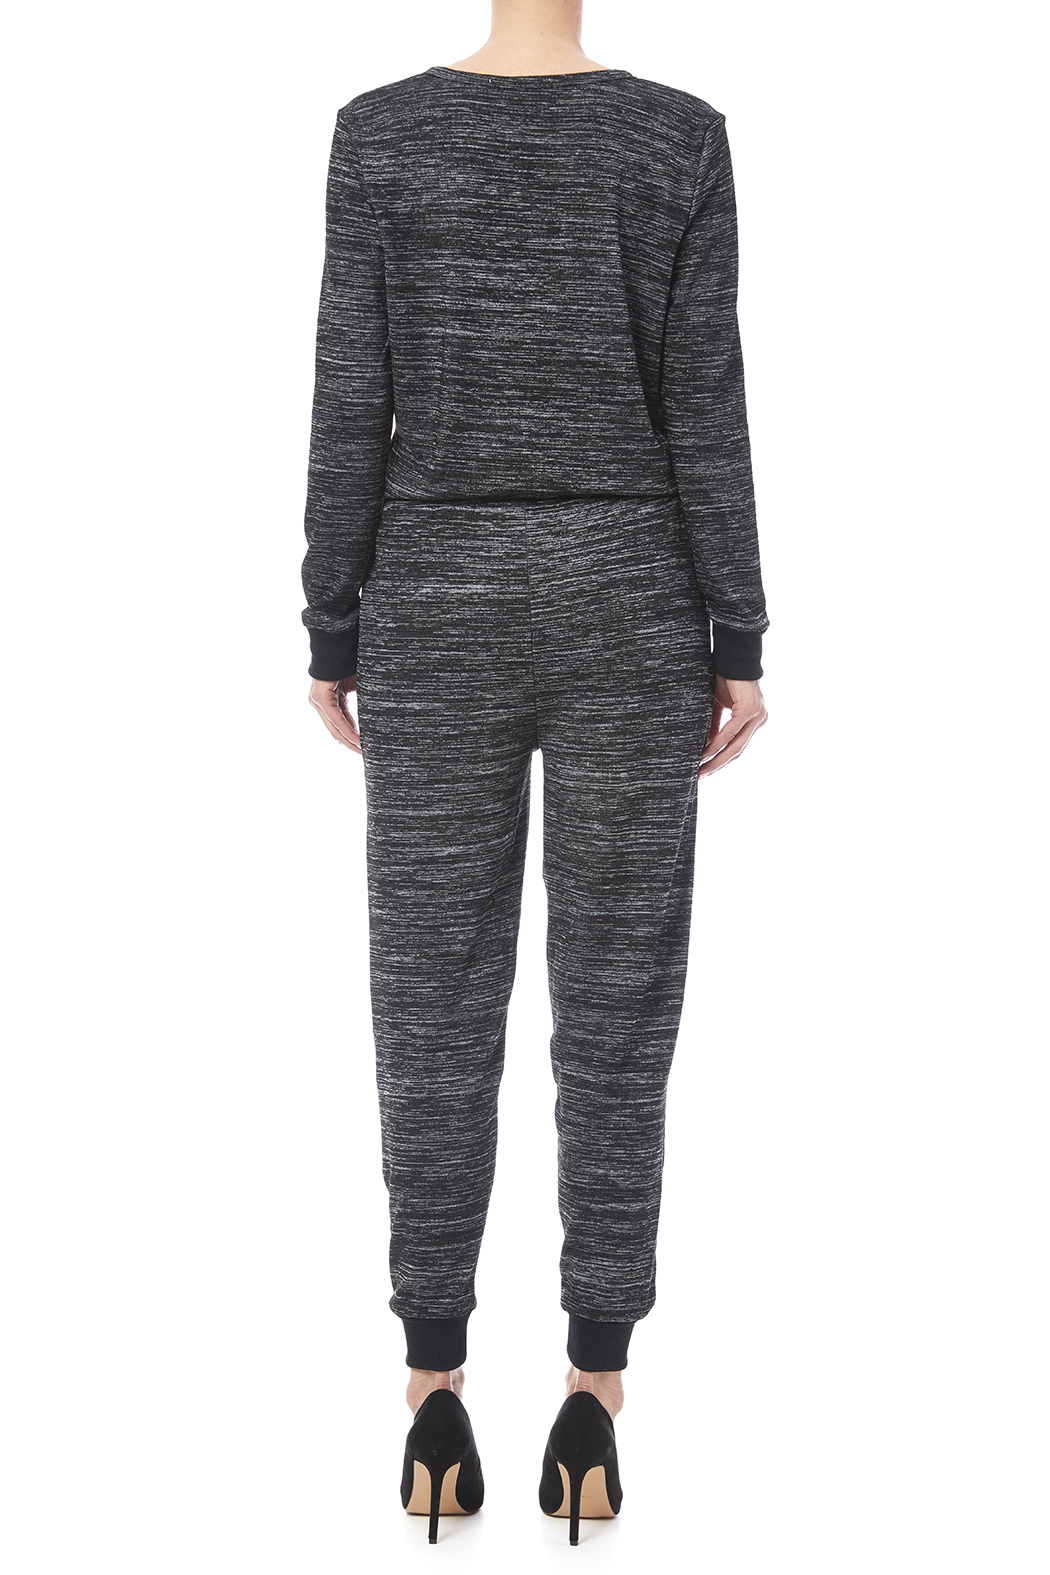 896b9be1 RD Style Trackie Jumpsuit from New York by Luna — Shoptiques